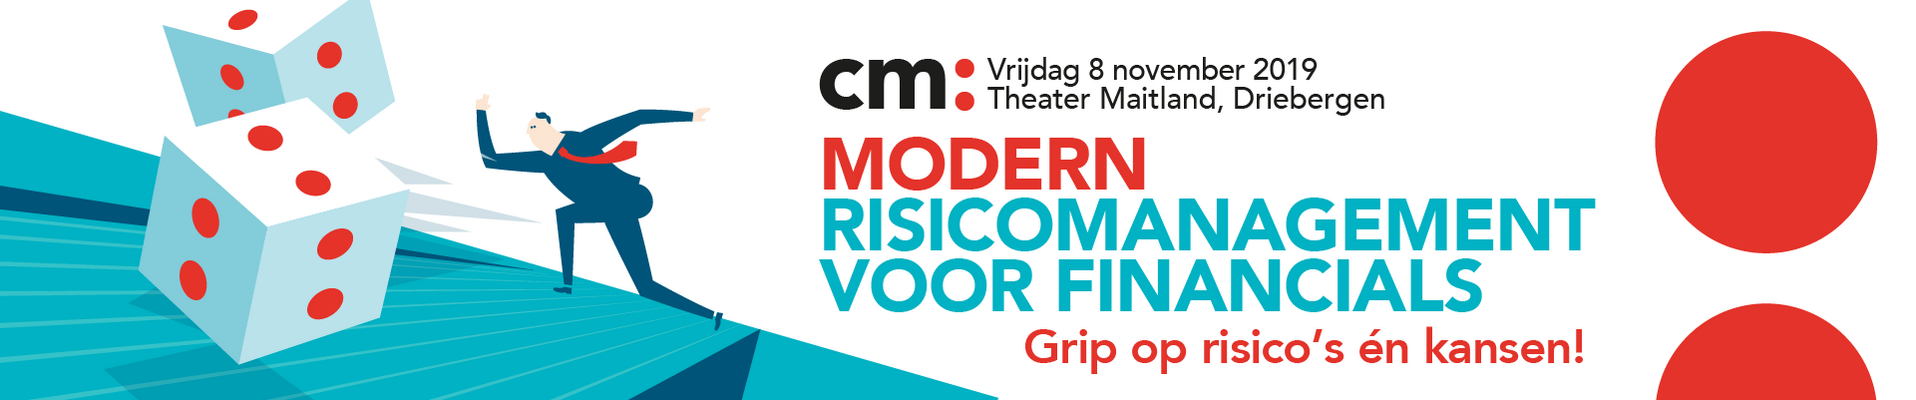 Modern Risicomanagement voor financials